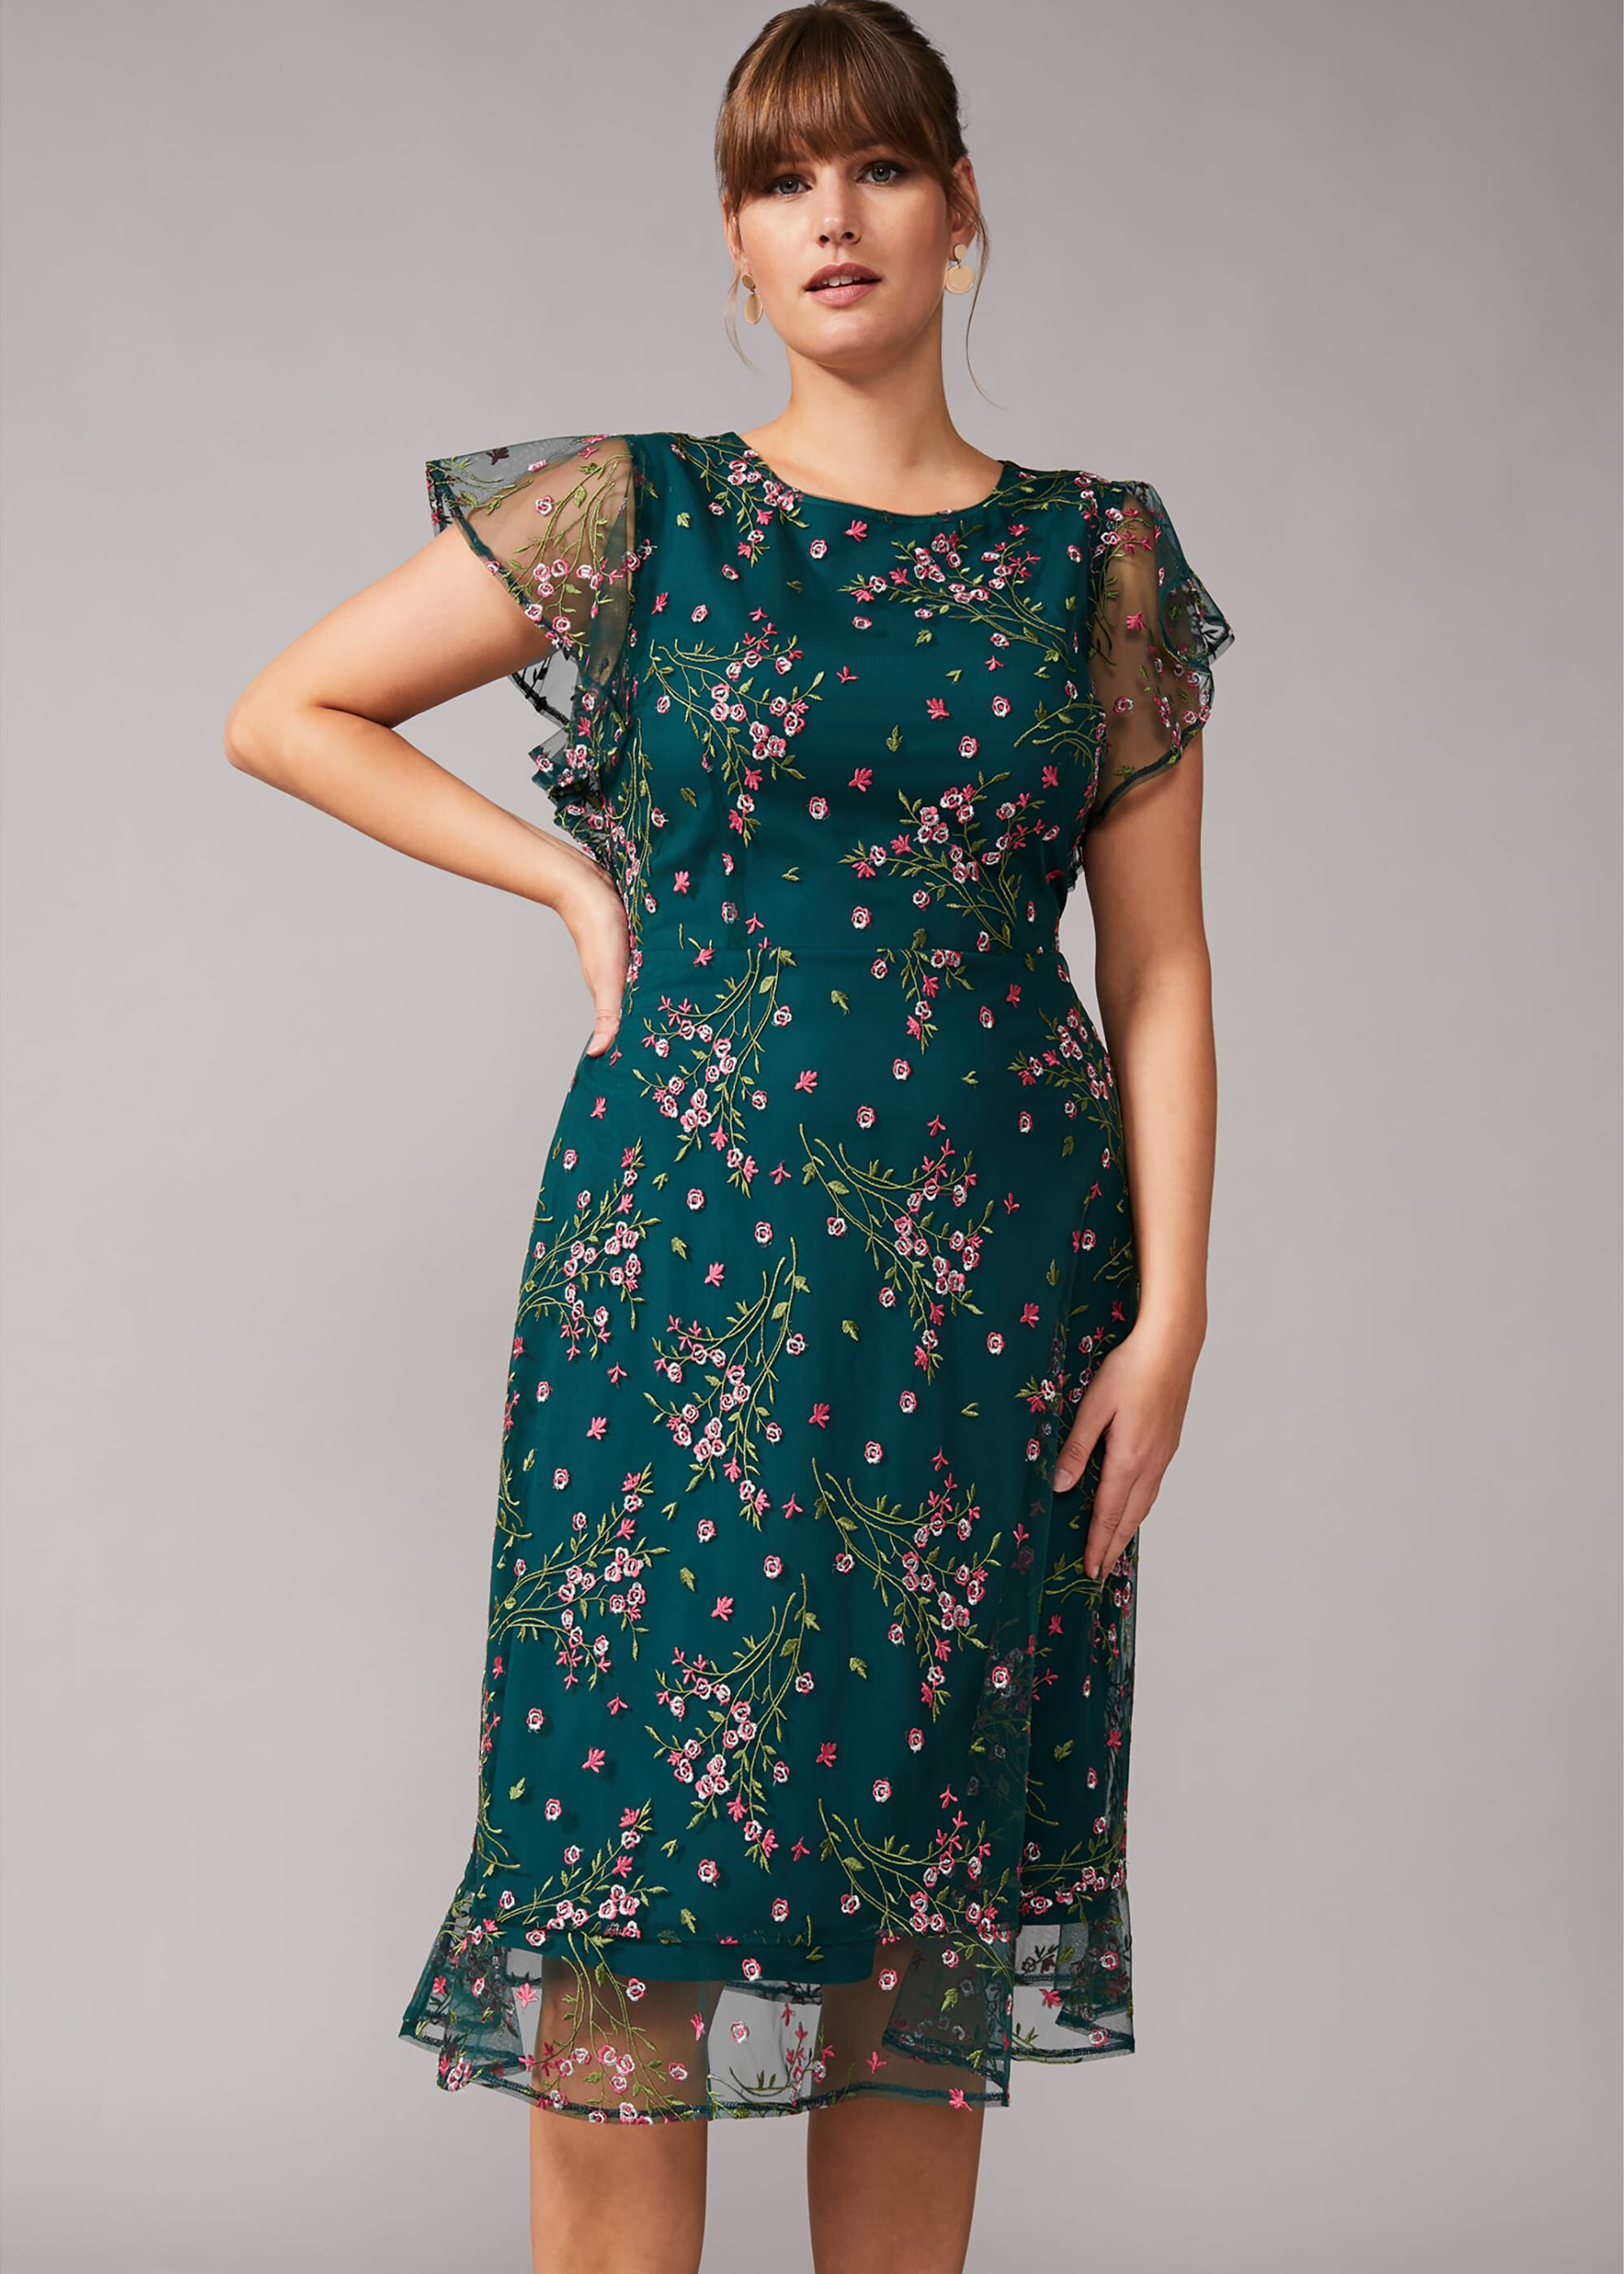 Studio 8 Aileen Embroidered Dress, Green, Shift, Occasion Dress